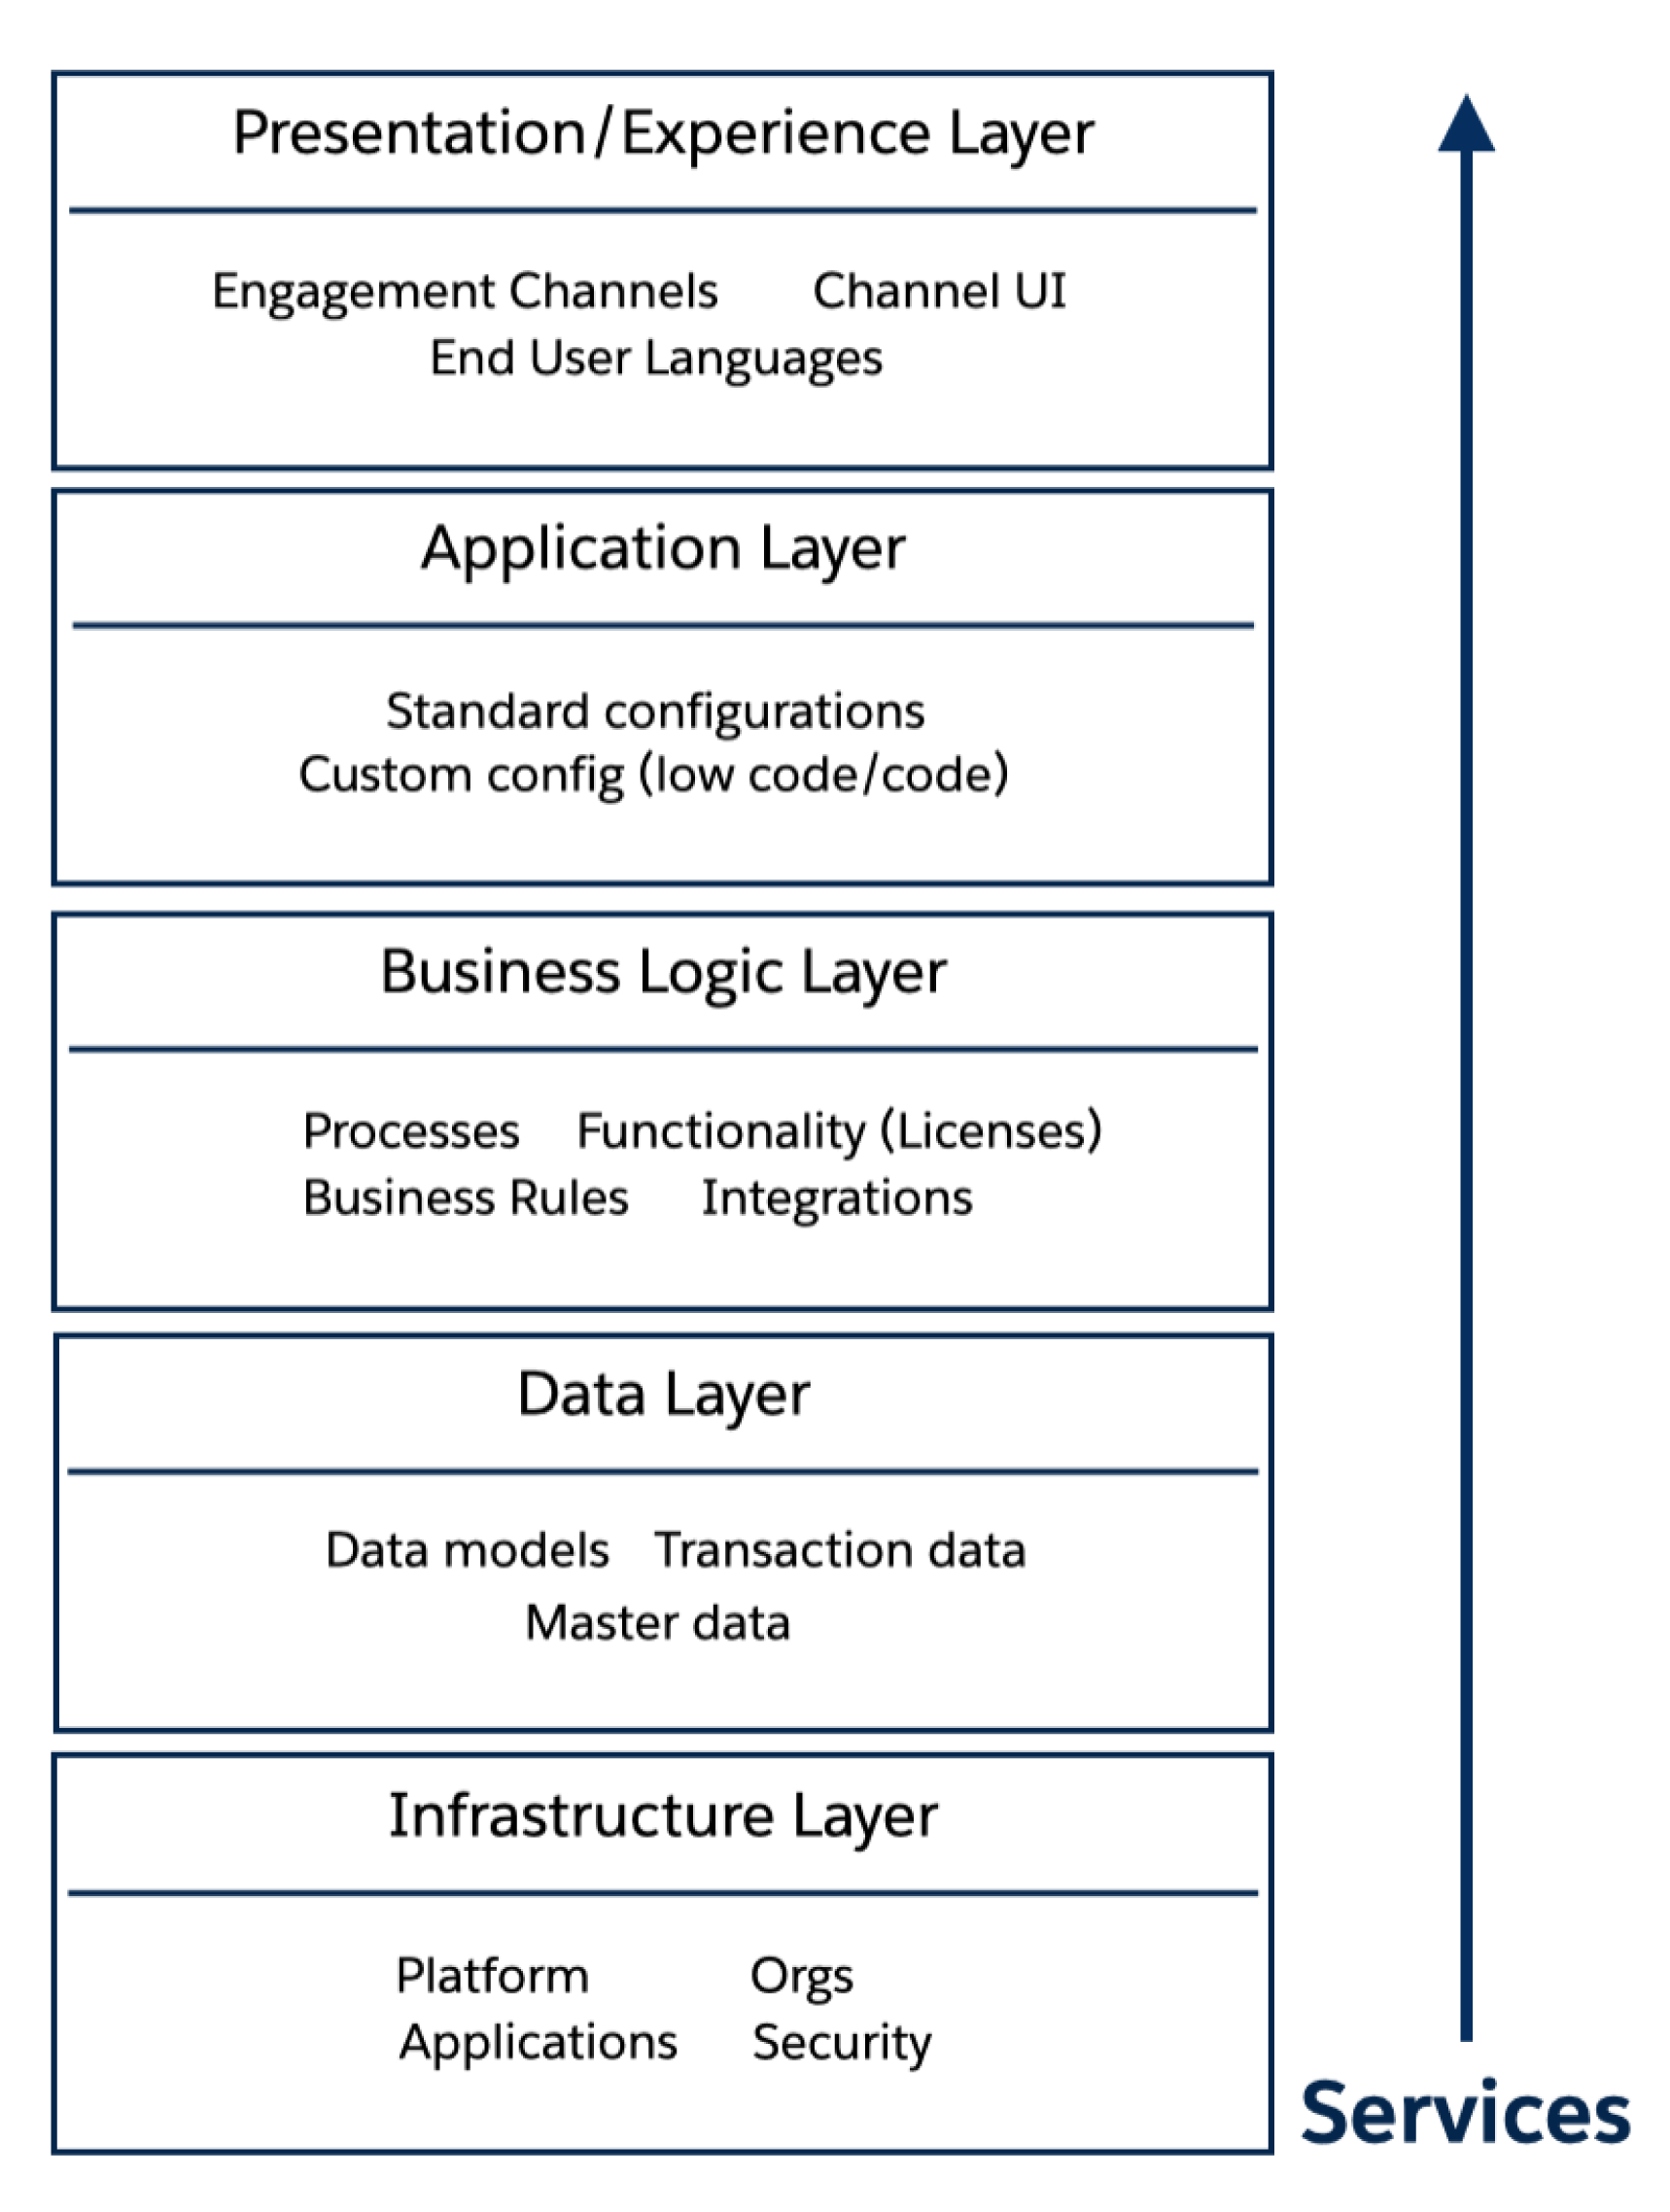 architecture layers with arrow showing service direction